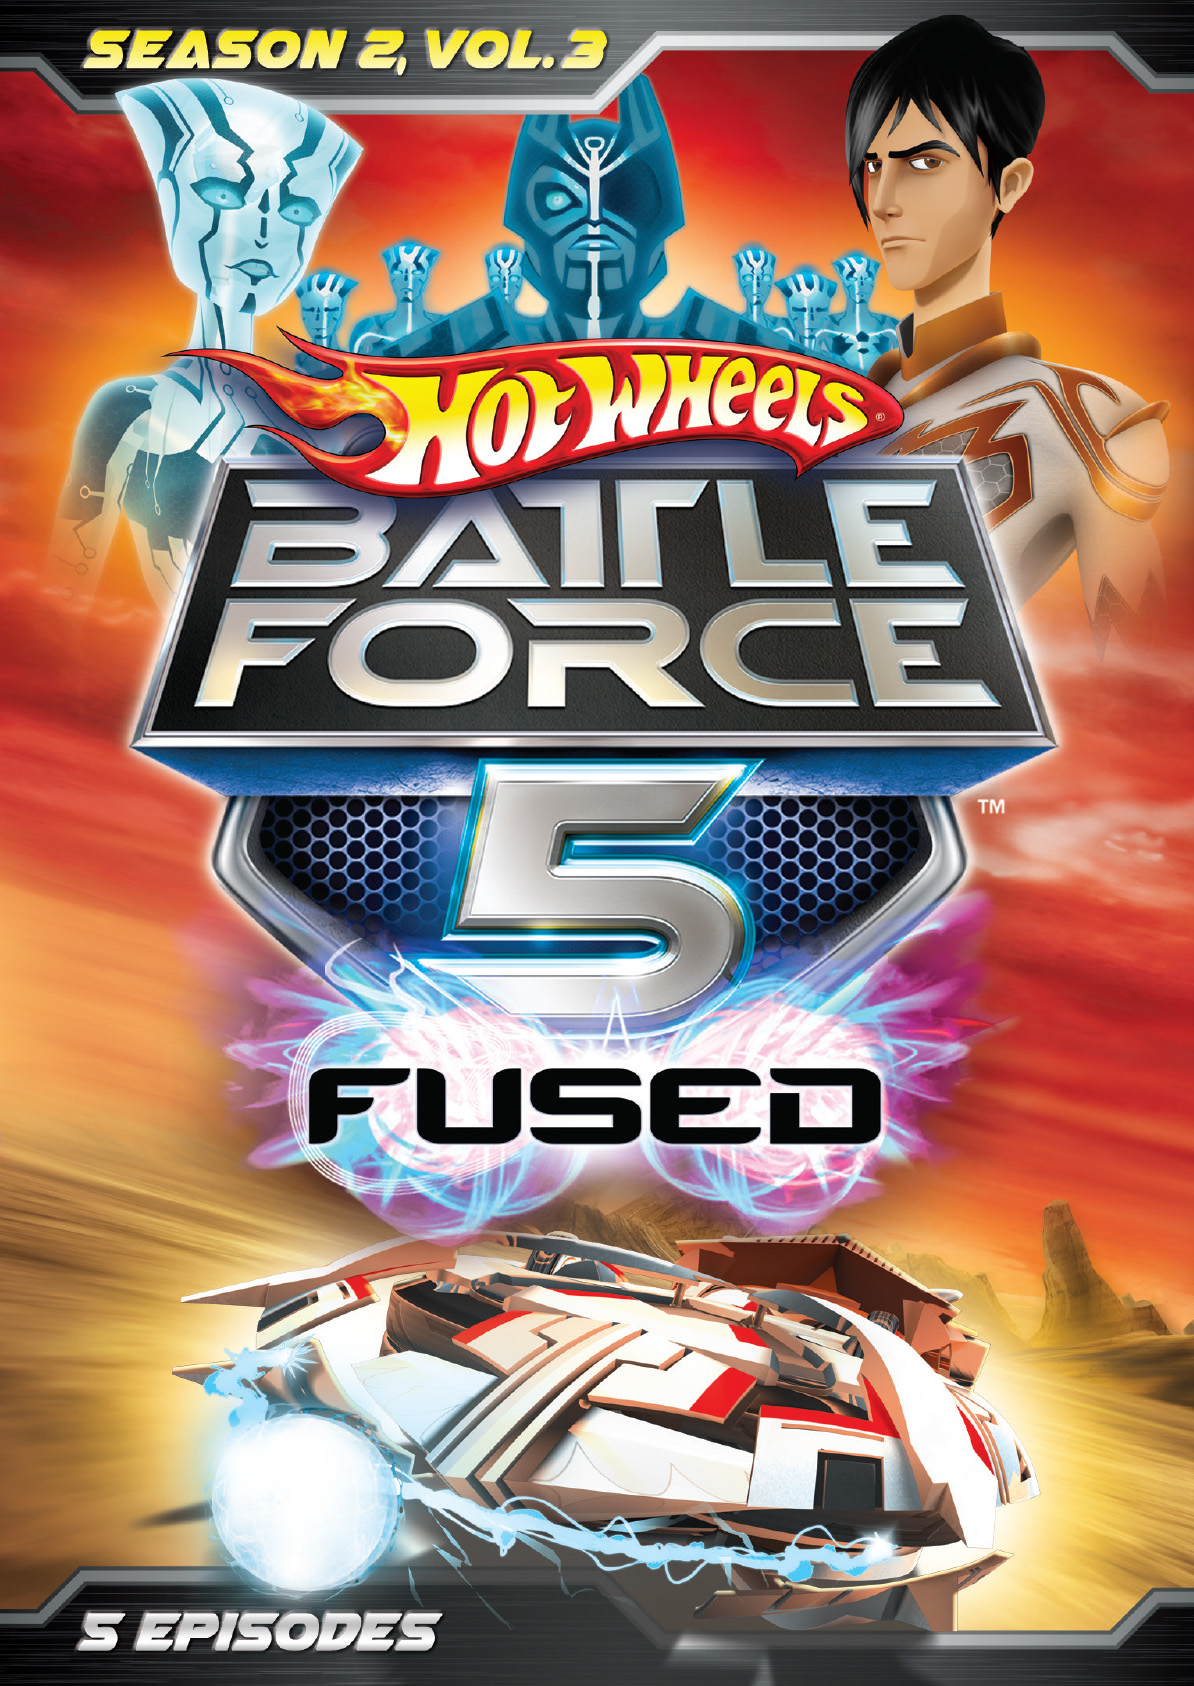 Hot Wheels Battle Force 5 Season 2 Vol 3 Cinedigm